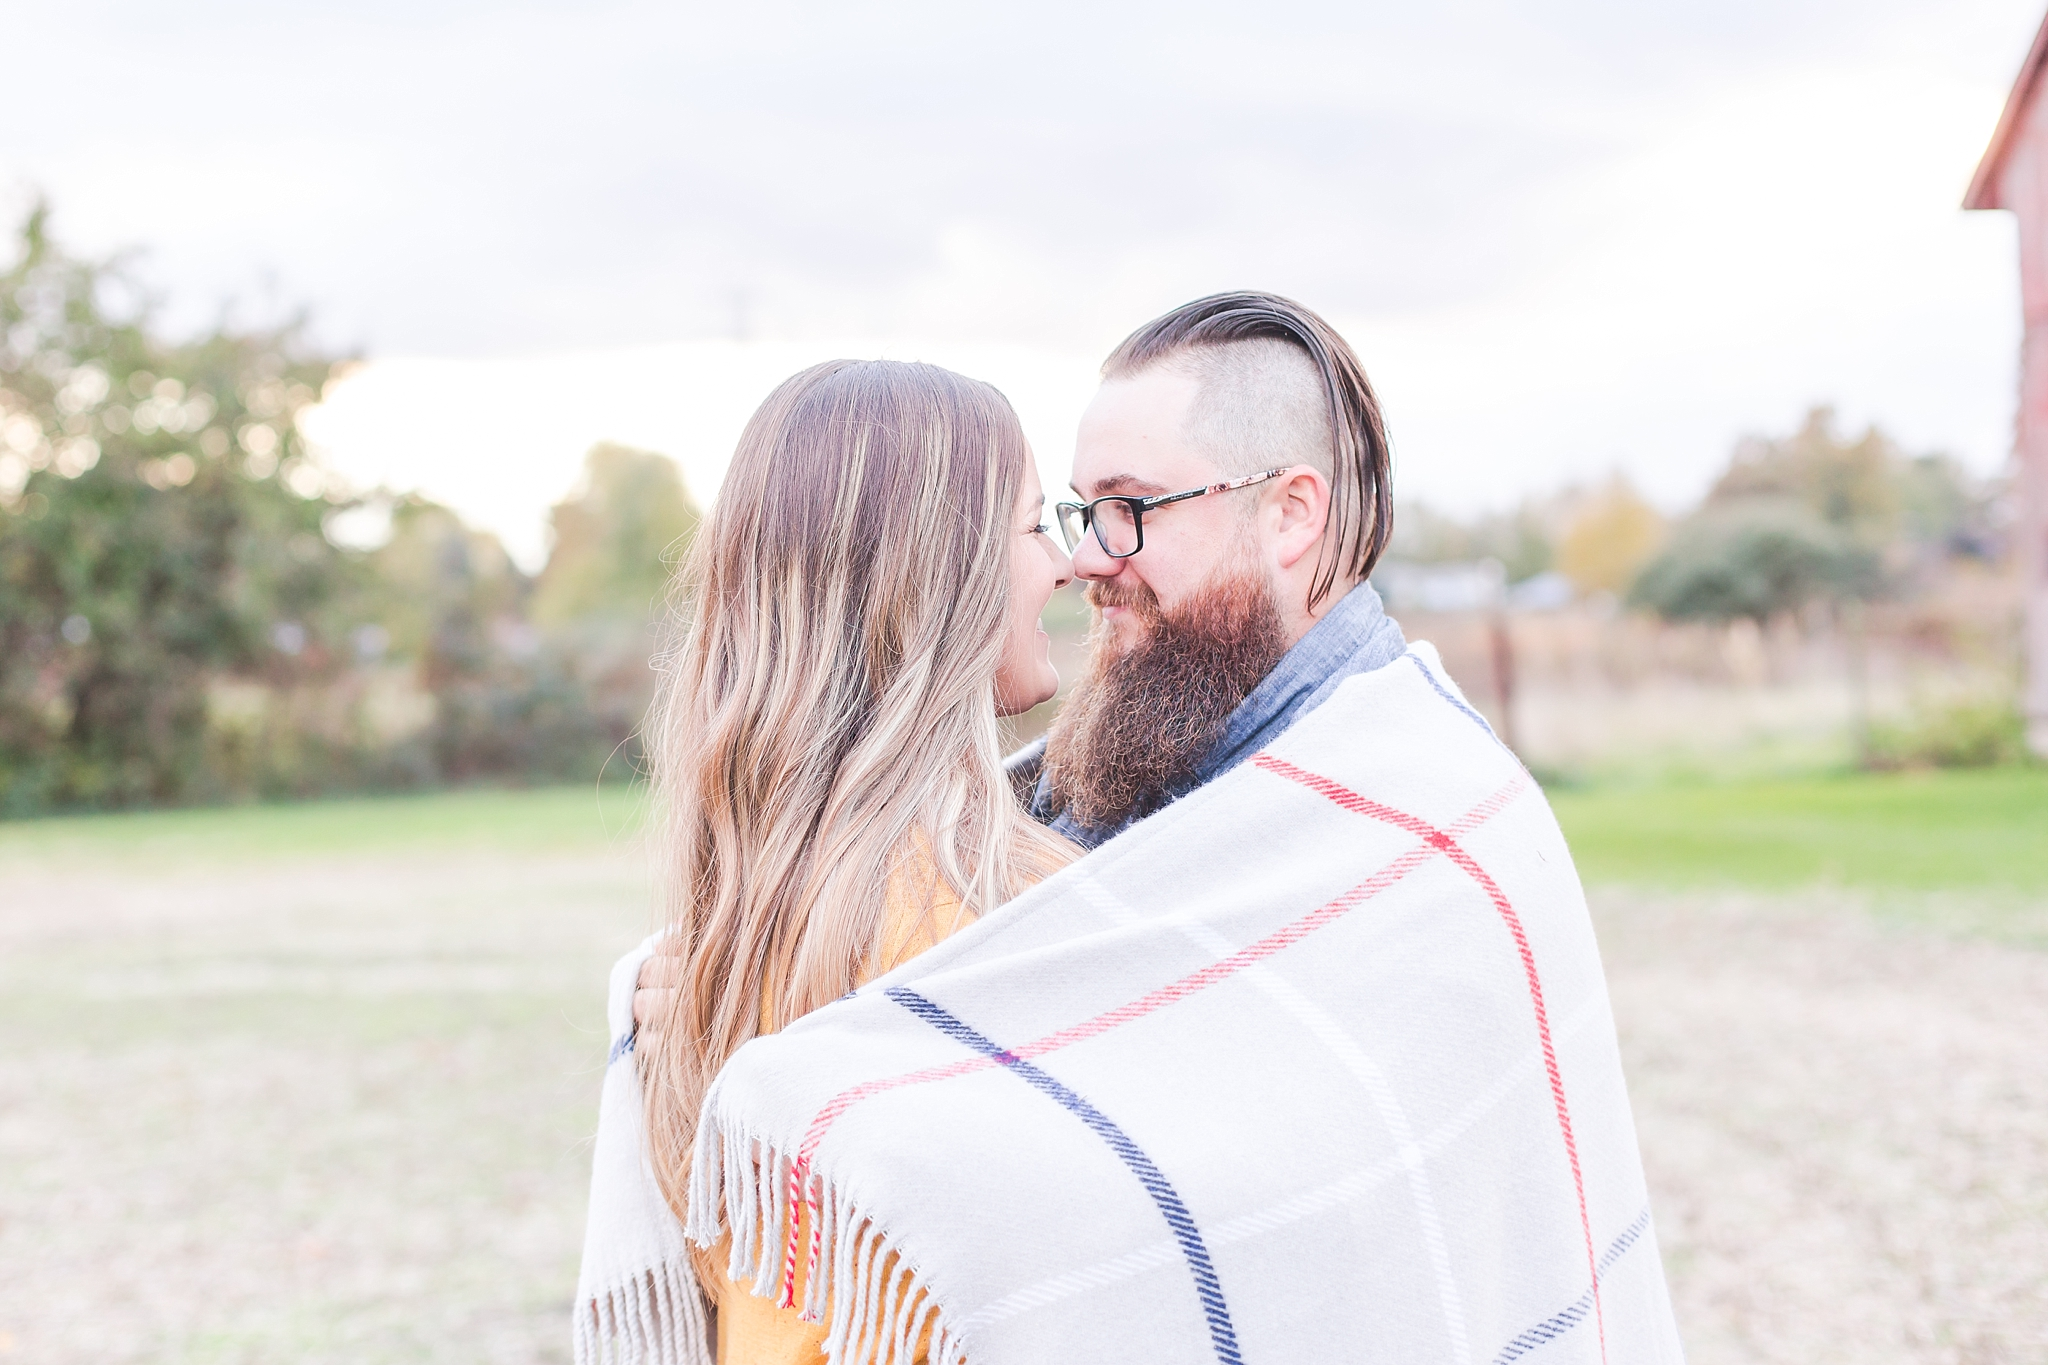 cozy-fall-engagement-photos-at-an-old-family-farm-in-monroe-michigan-by-courtney-carolyn-photography_0019.jpg